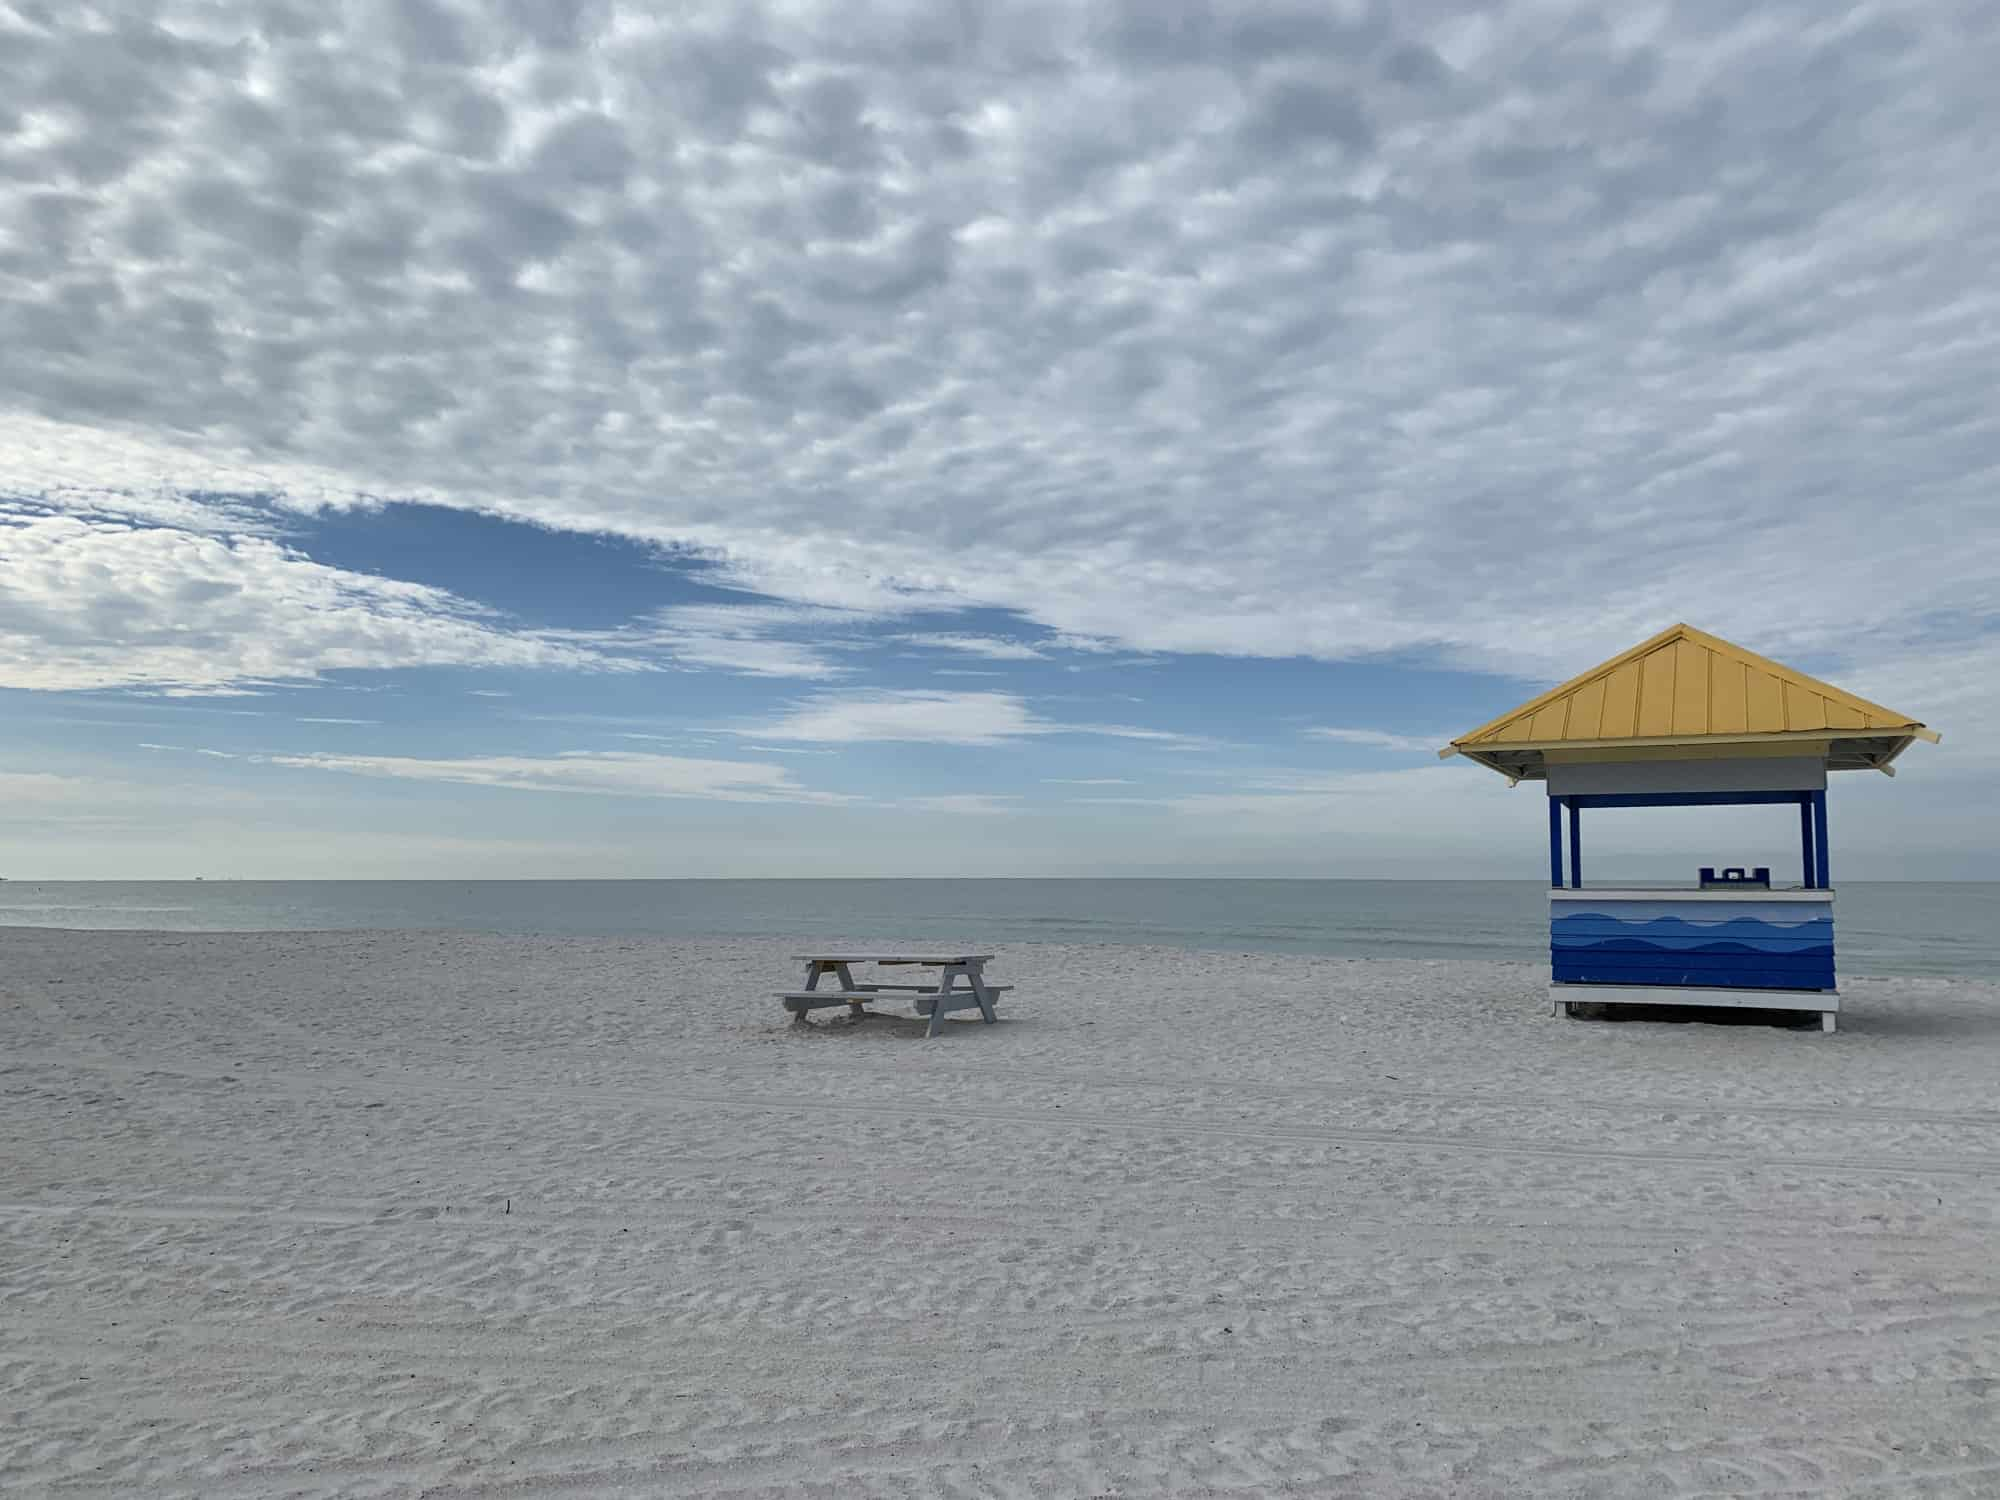 Things-to-do in-St-Pete-Beach-by-Sharon_Rigney